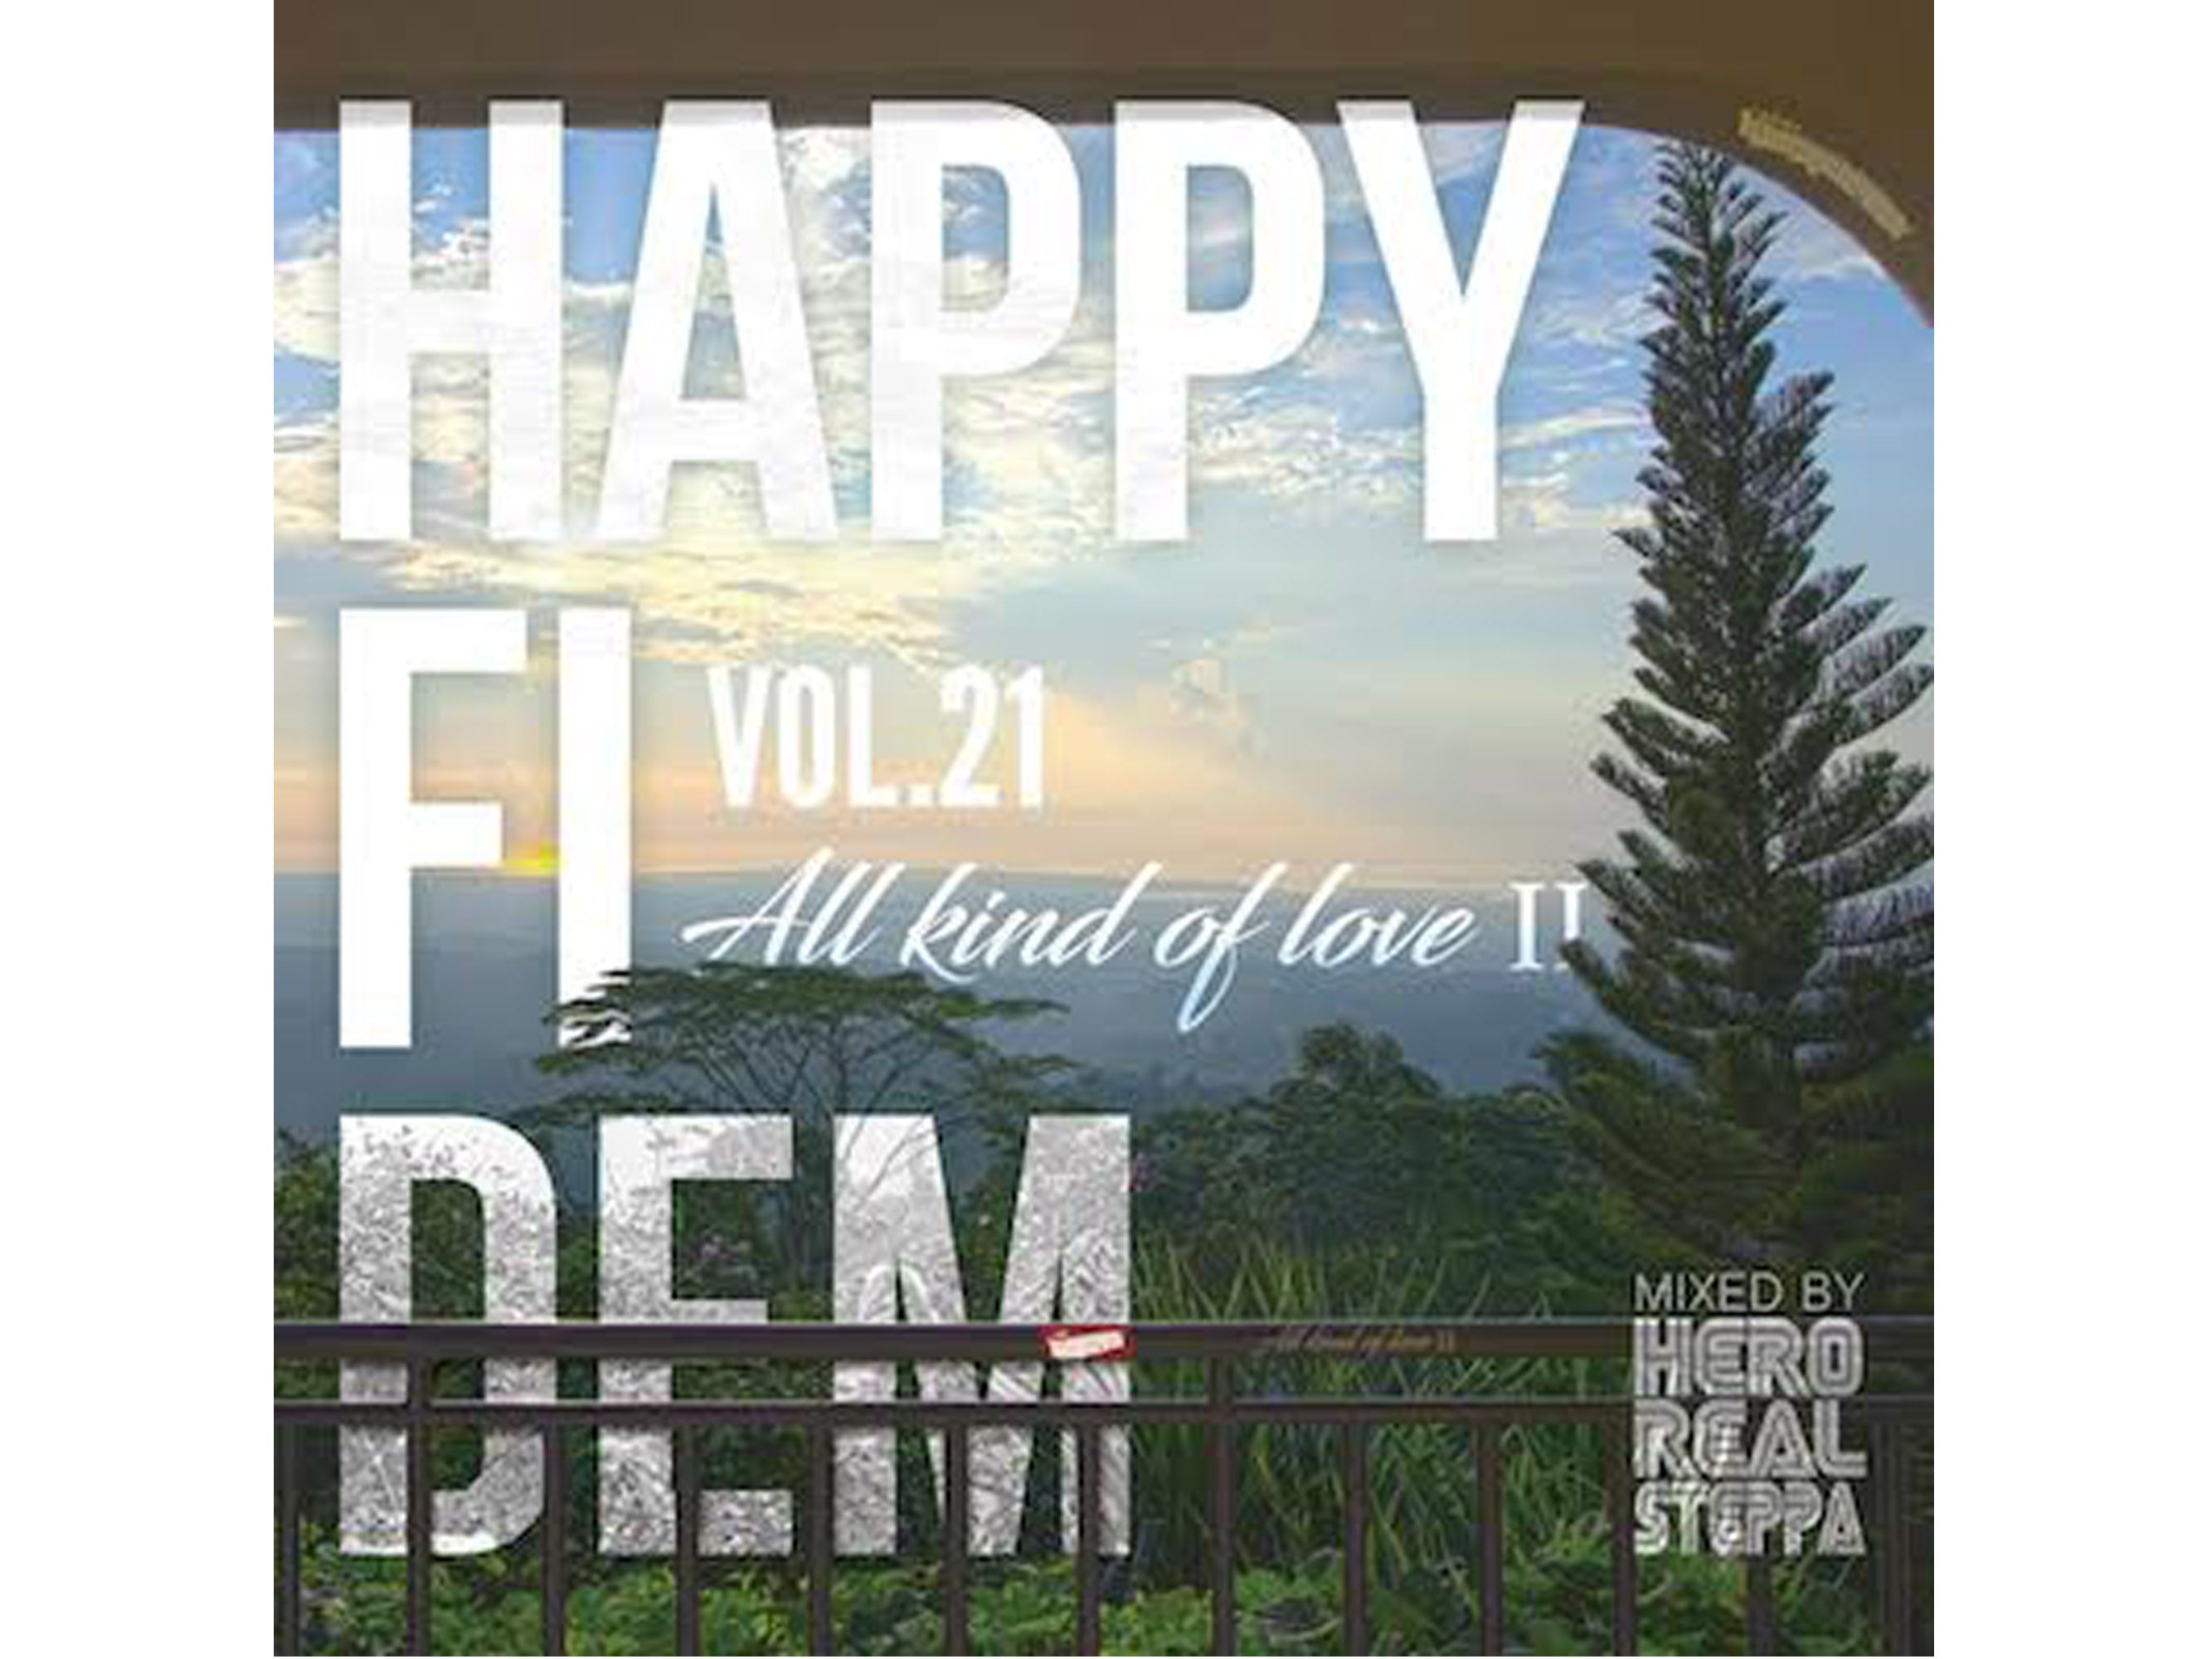 Happy Fi Dem vol.21- All kind of love II - / HERO REALSTEPPA rep HUMAN CREST